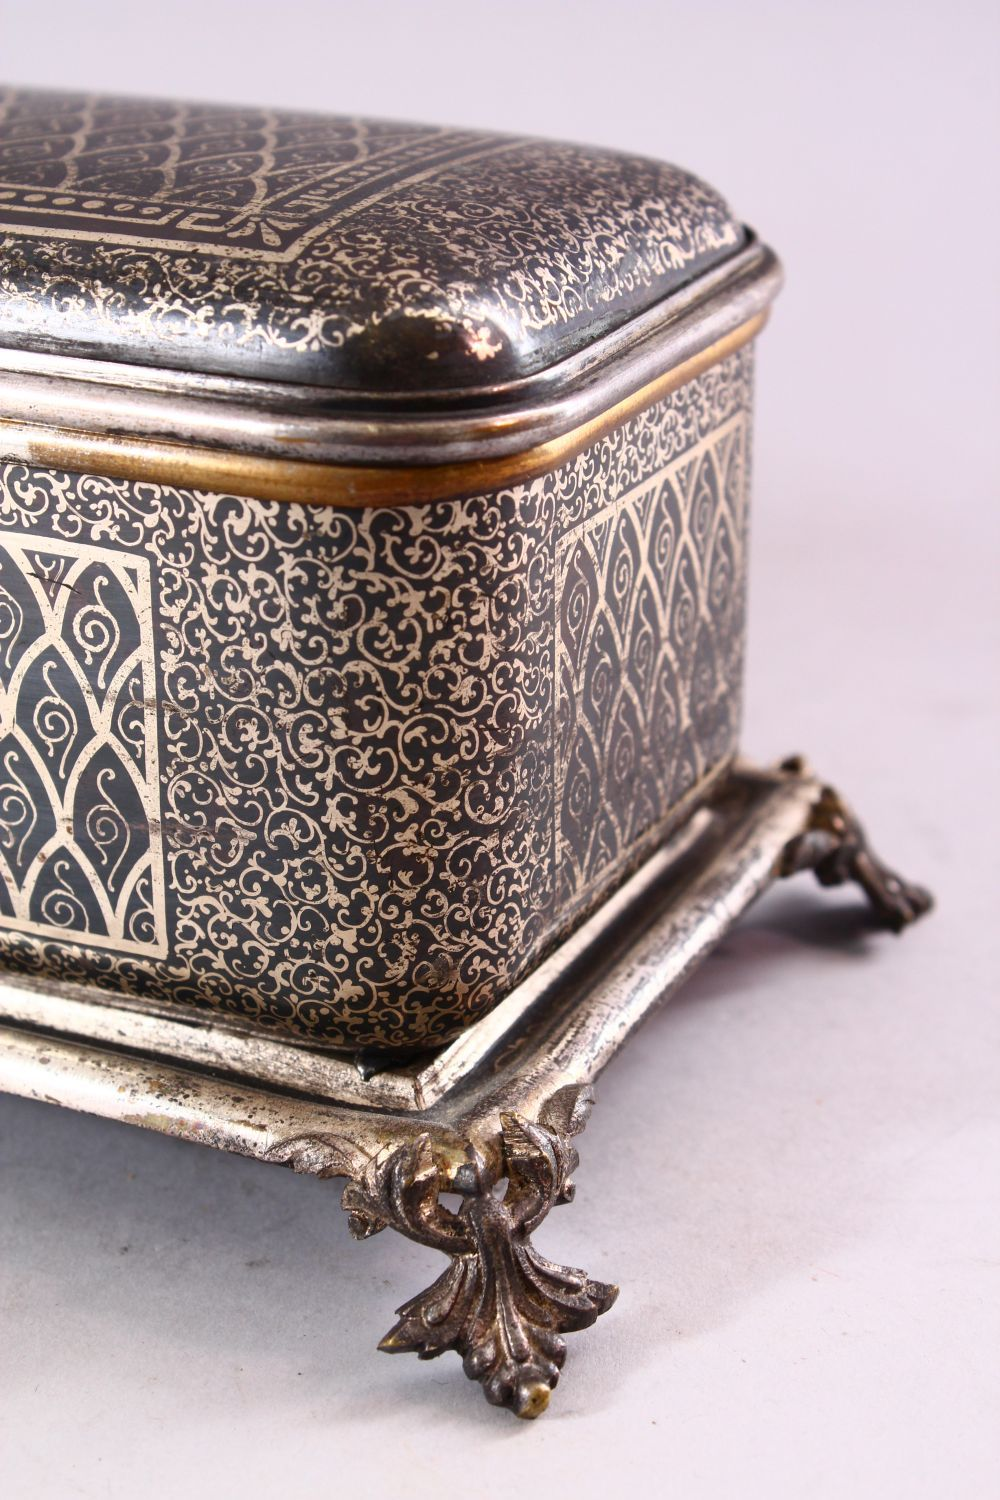 A BIDRI STYLE RECTANGULAR HINGED CASKET for the European market, with panels of scrolling - Image 2 of 5